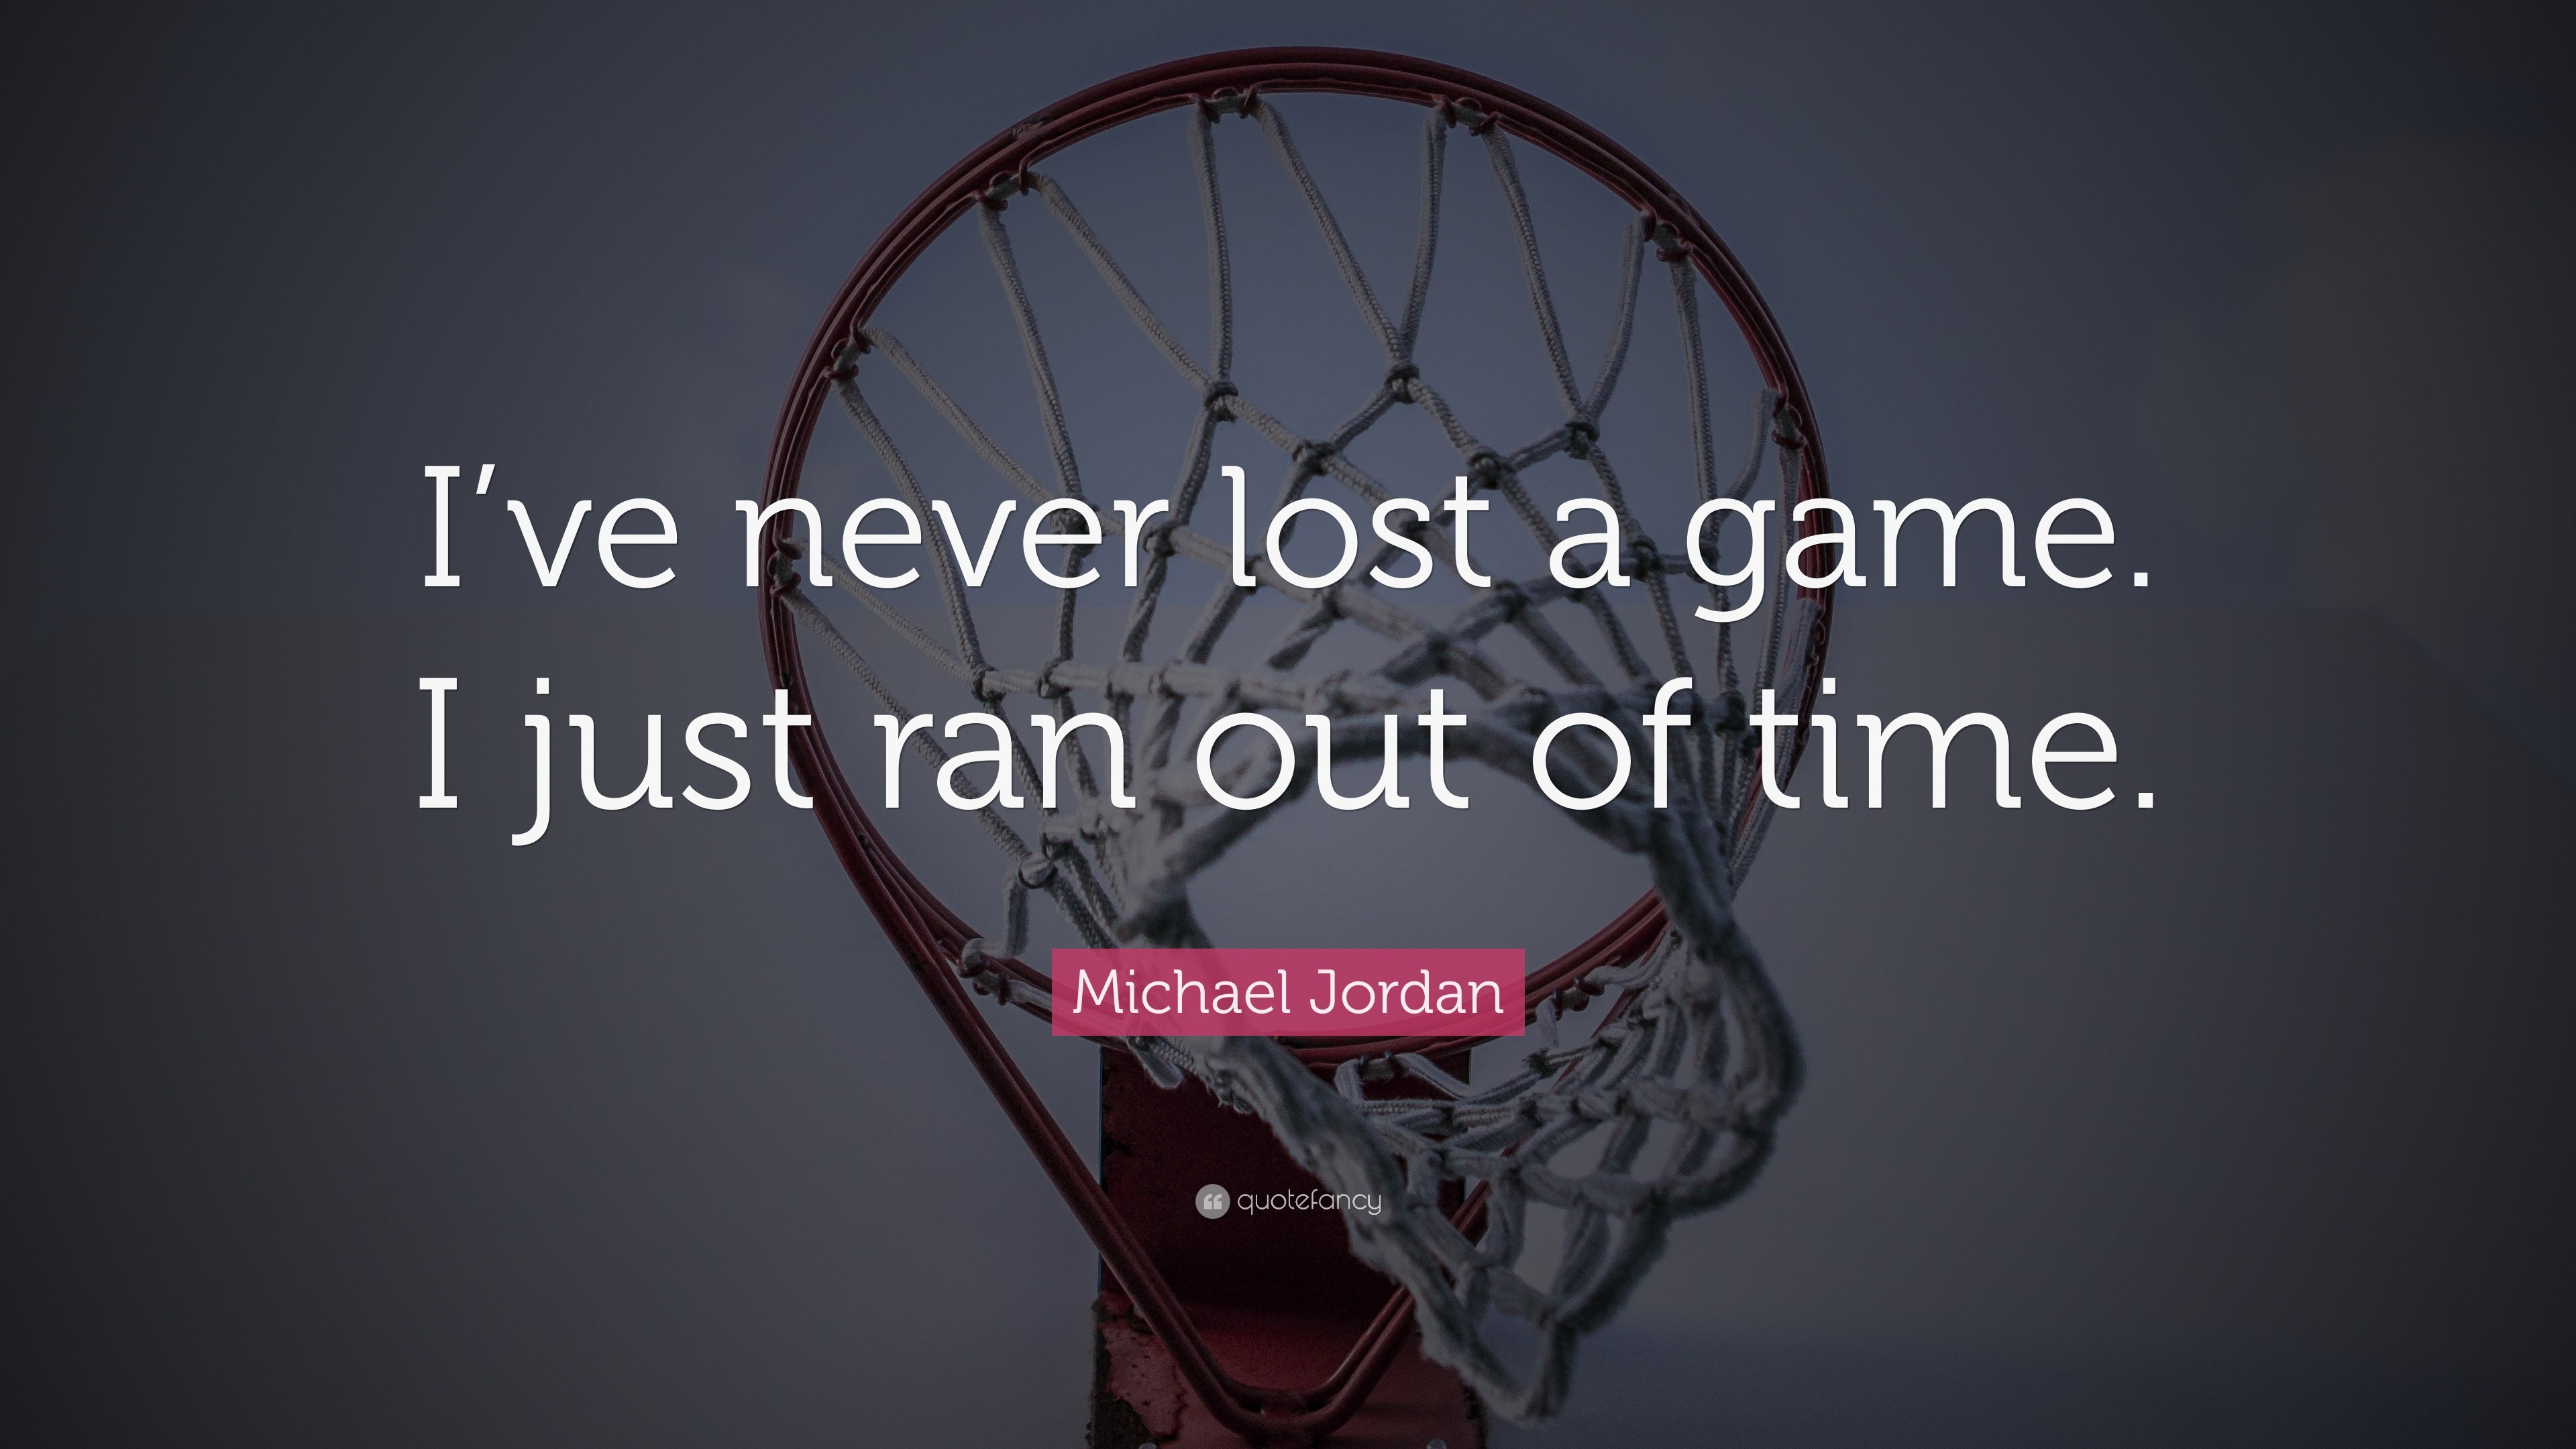 Nike Motivational Sports Quotes Wallpaper Michael Jordan Quote Text Motivational Sport